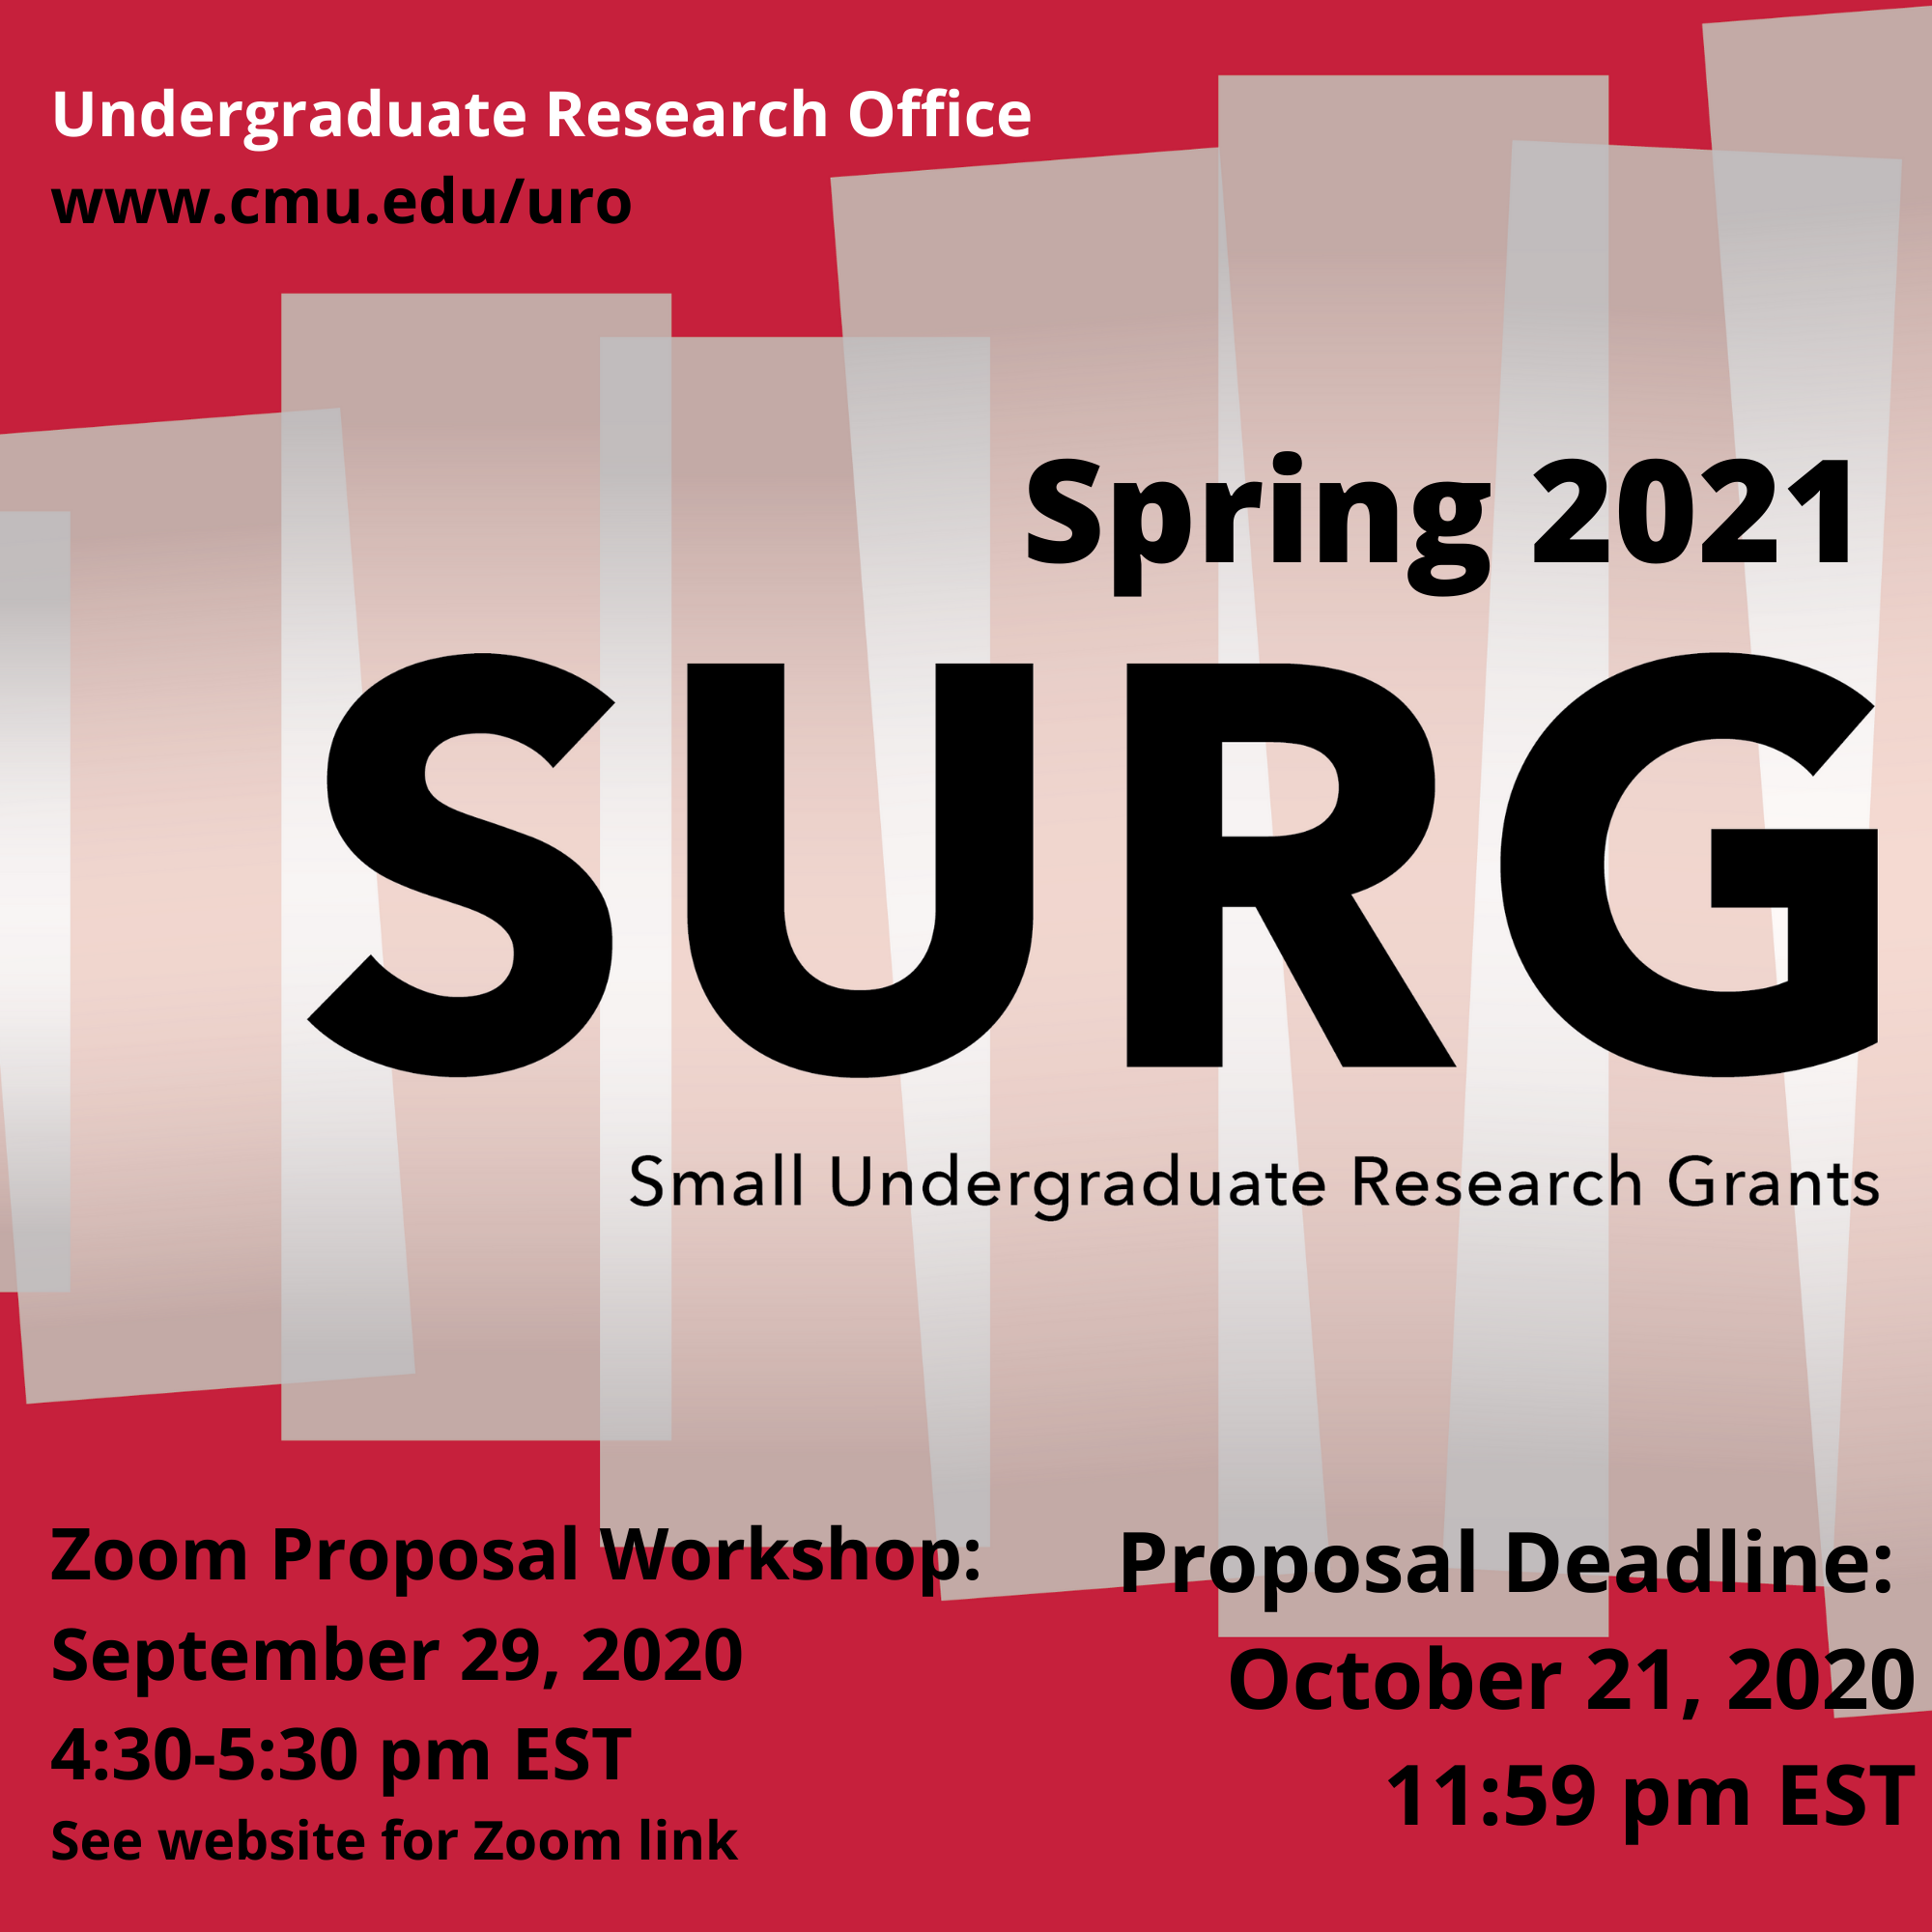 SURG poster. Reads: Undergraduate Research Office www.cmu.edu/uro Spring 2021 SURG Small Undergraduate Research Grants Zoom Proposal Workshop September 29, 2020 4:30-5:30 pm EST See website for Zoom link Proposal Deadline October 21, 2020 11:59 pm EST